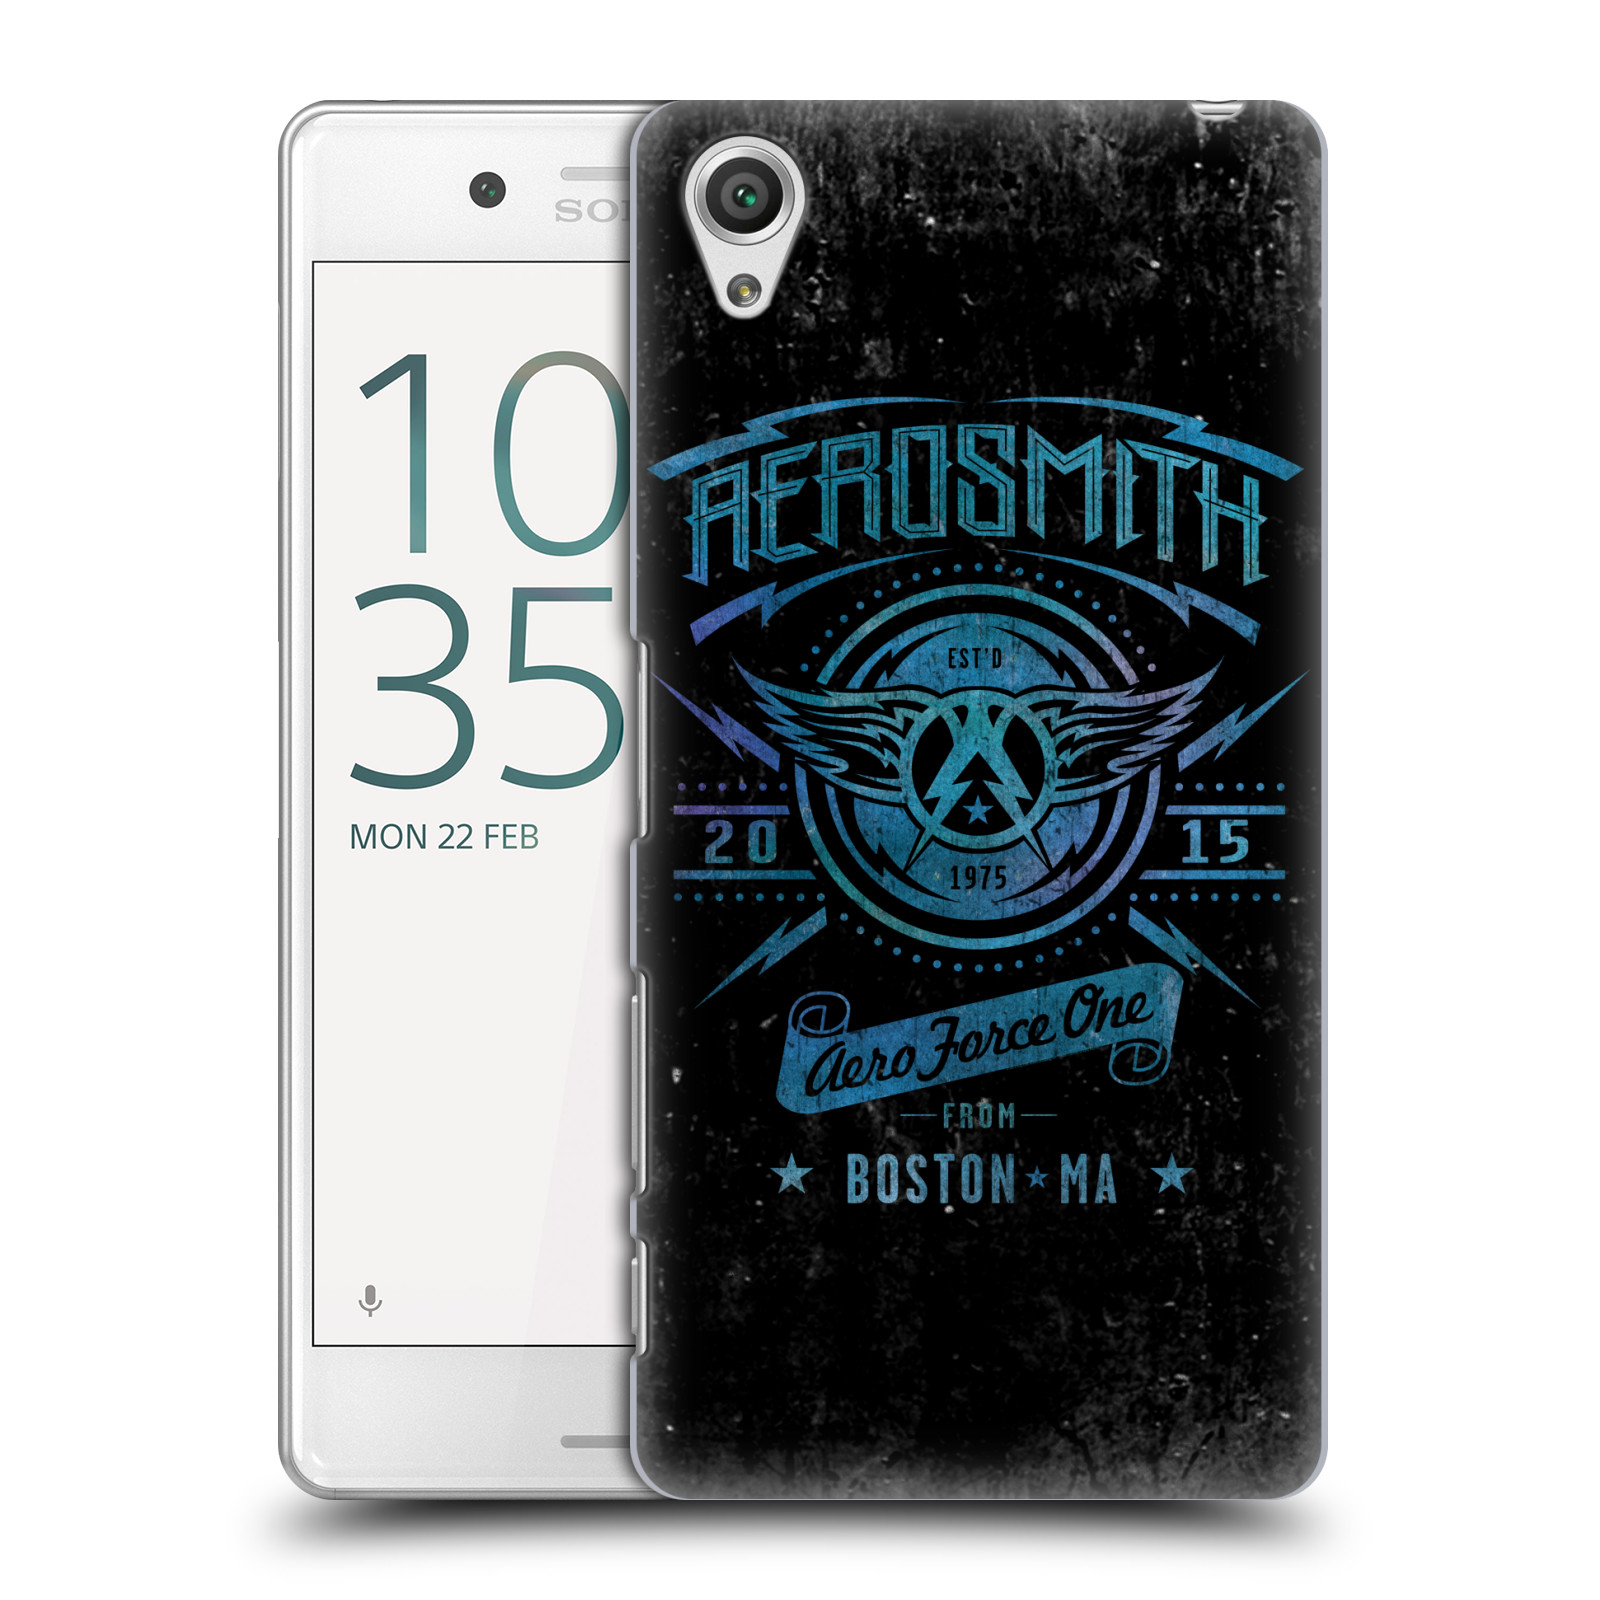 Plastové pouzdro na mobil Sony Xperia X Performance HEAD CASE - Aerosmith - Aero Force One